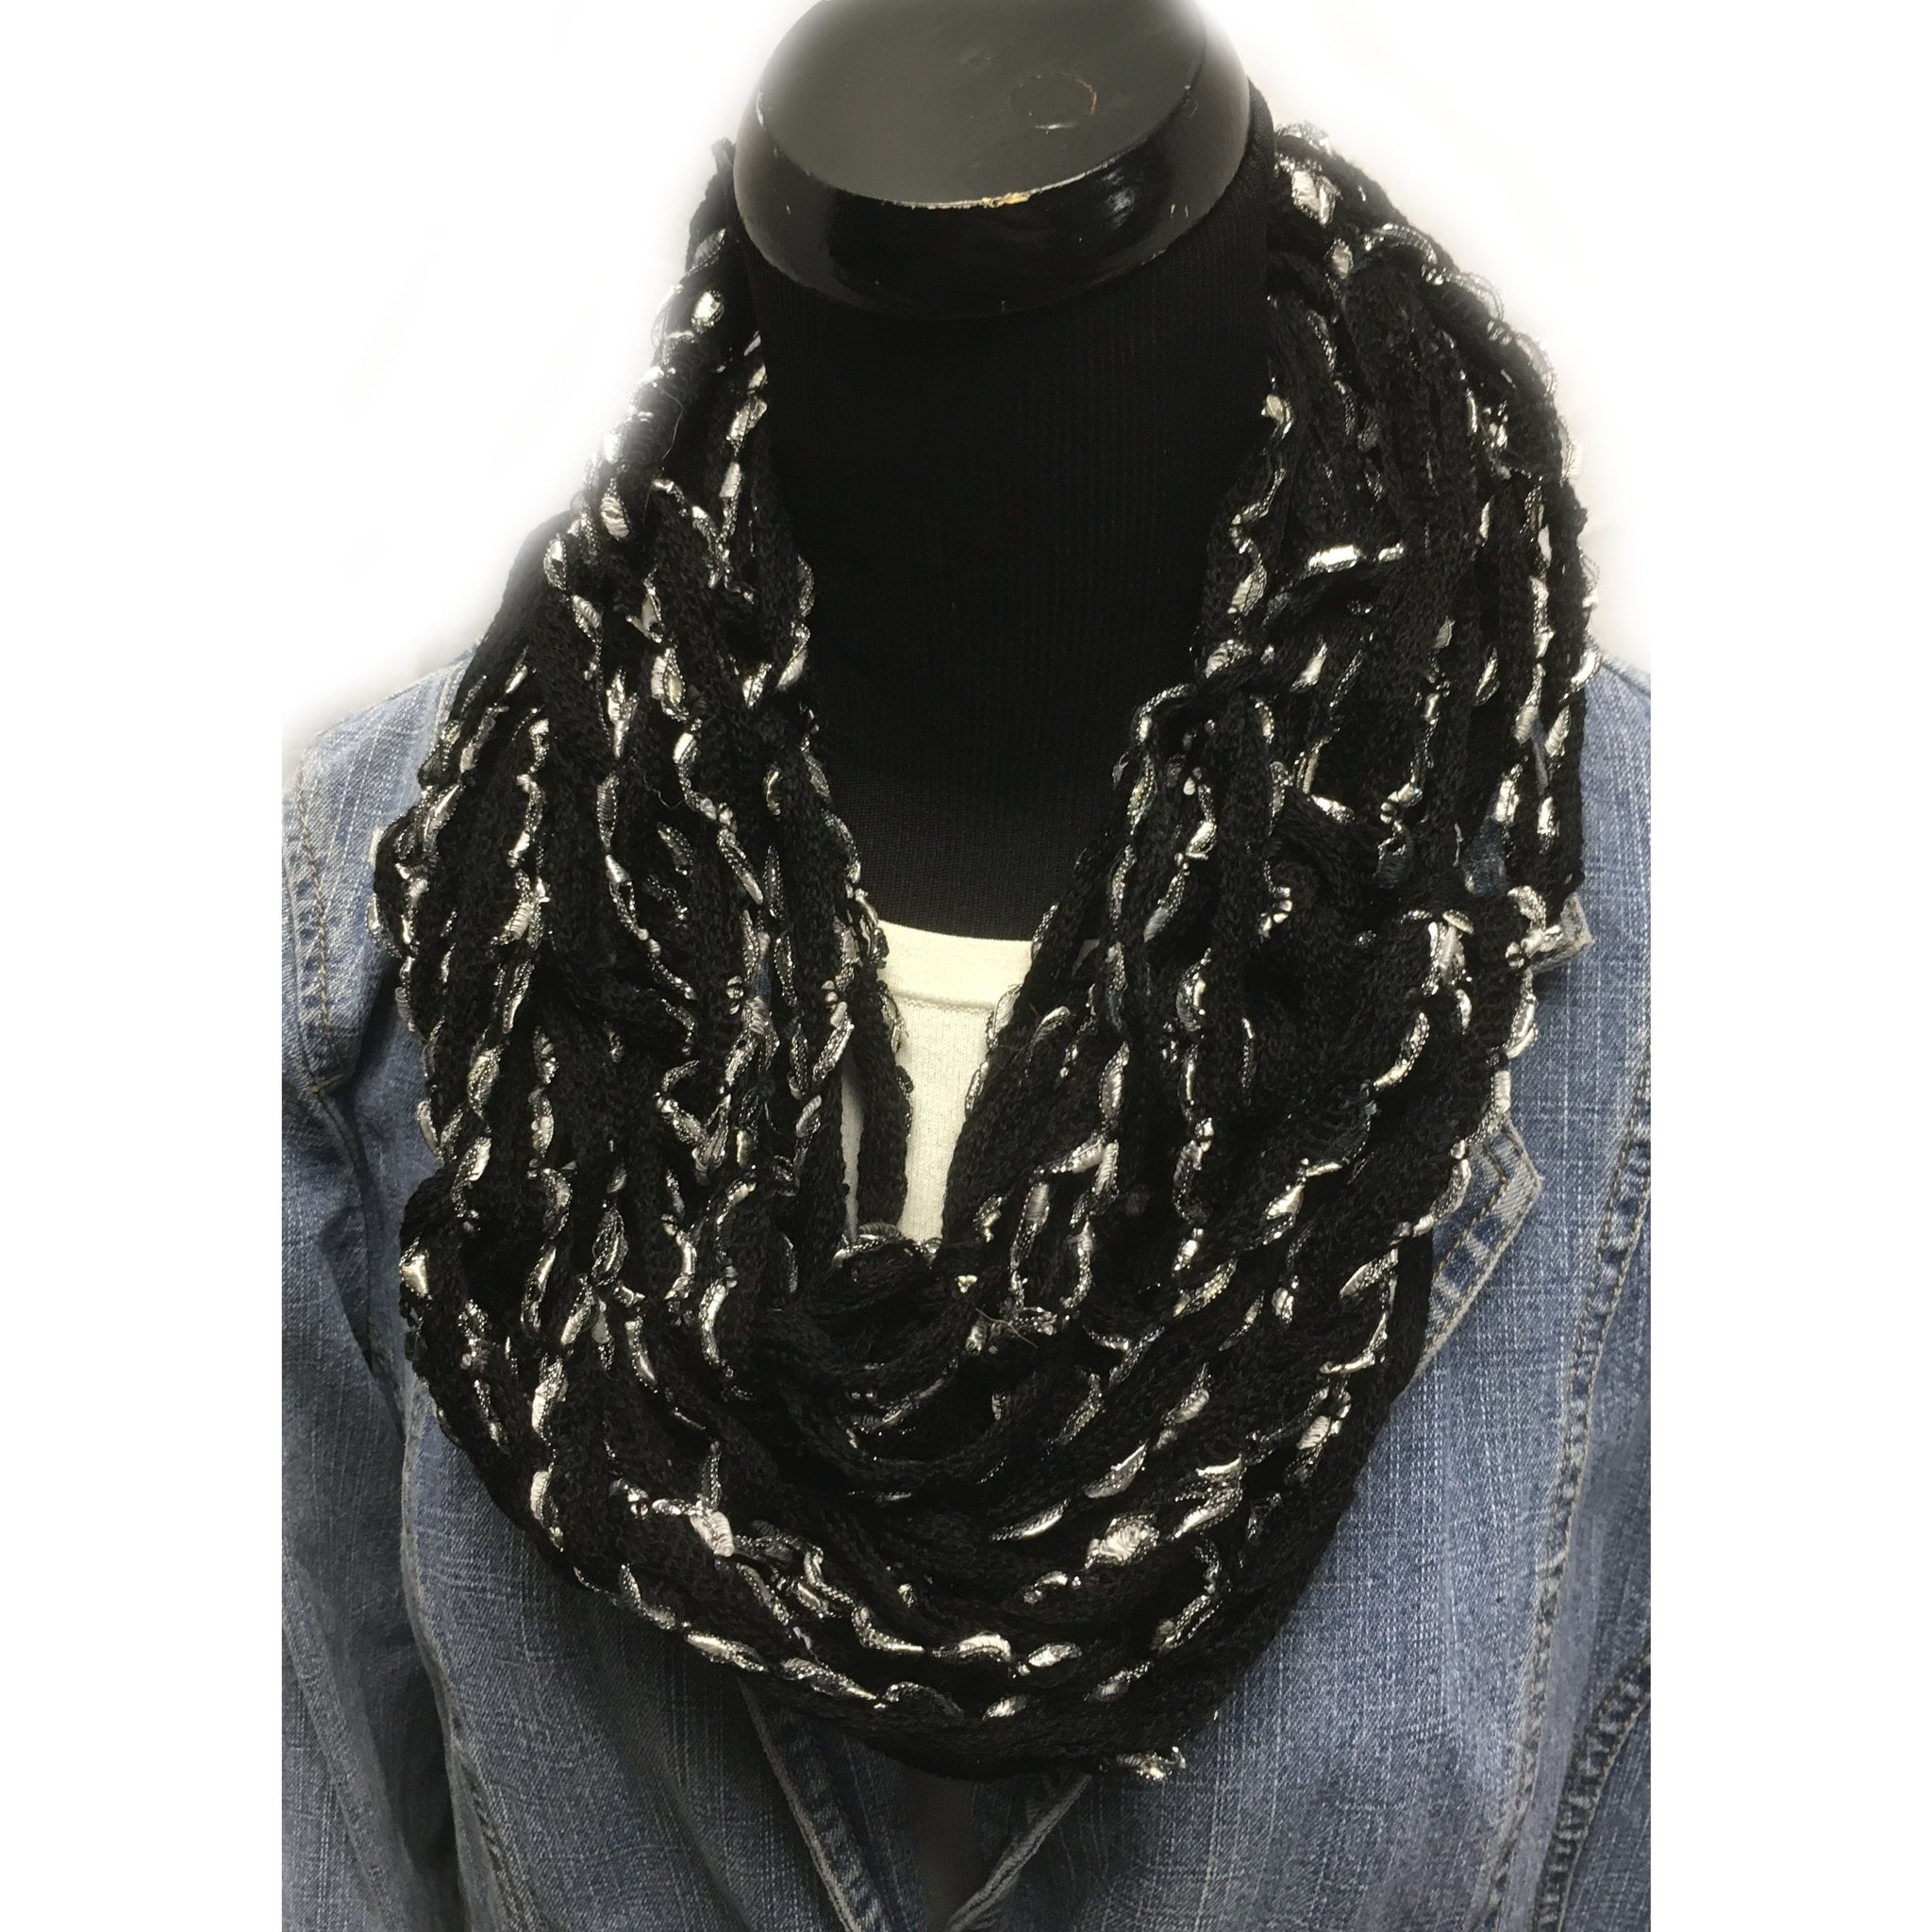 Black and Silver Arm Knit Infinity Scarf